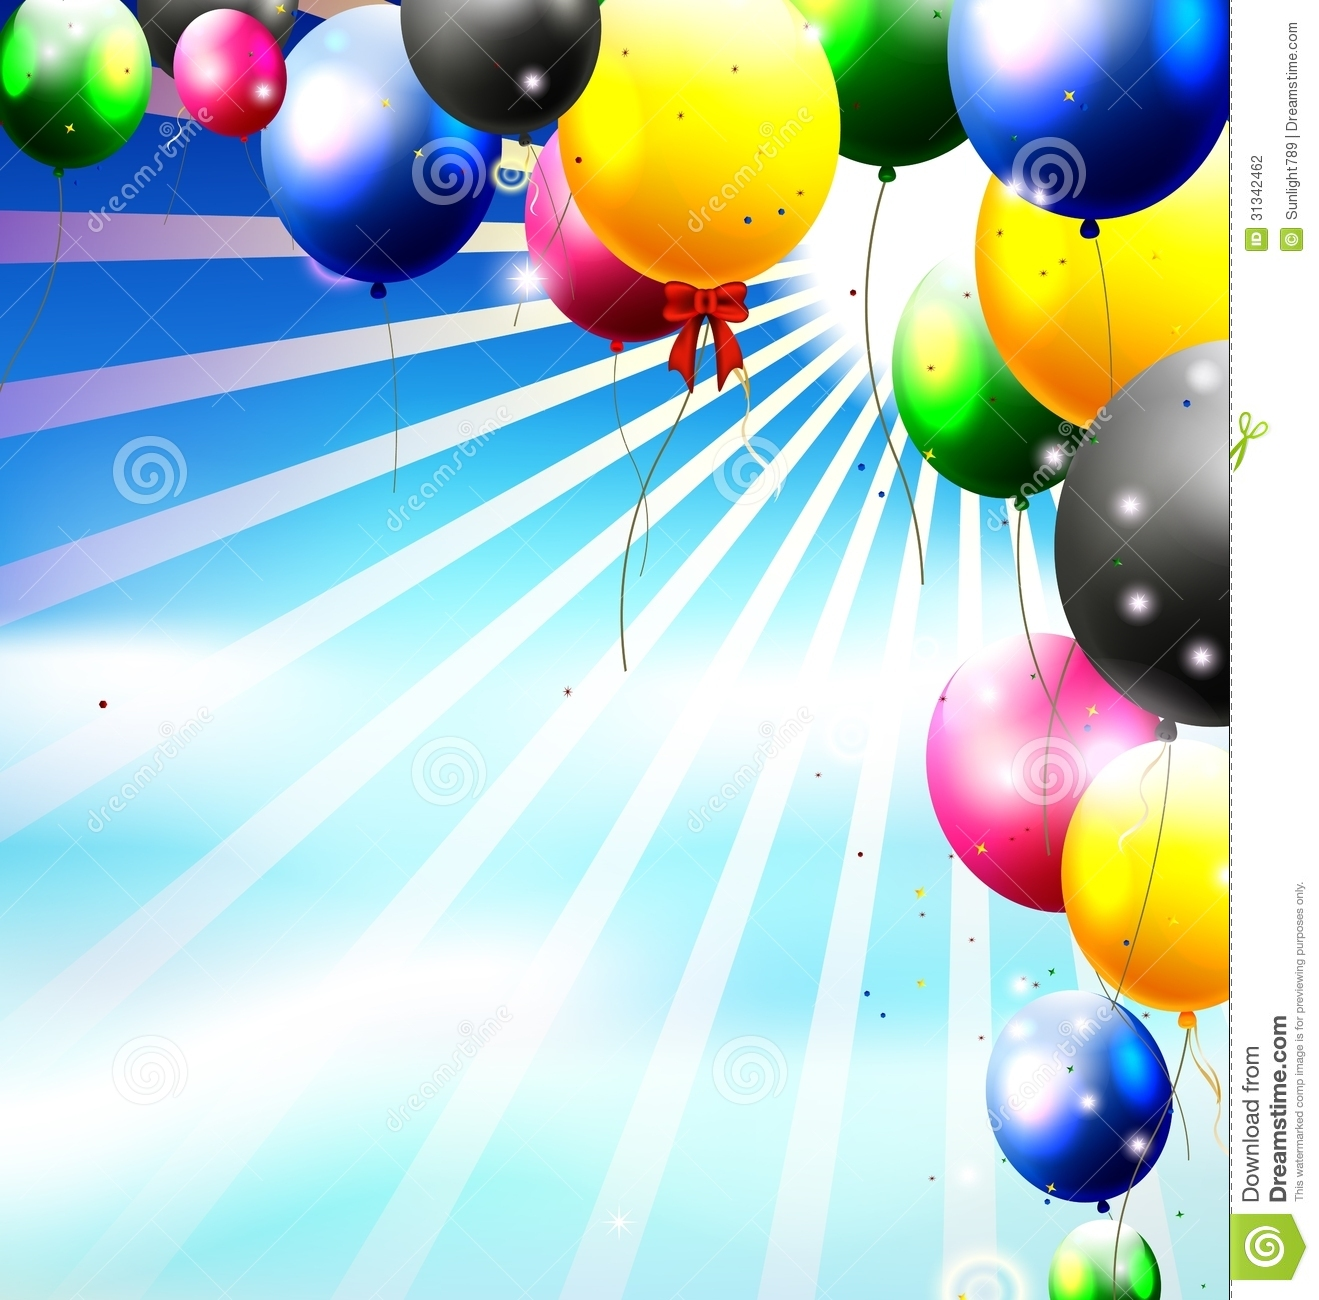 balloons in the sky for birthday background stock